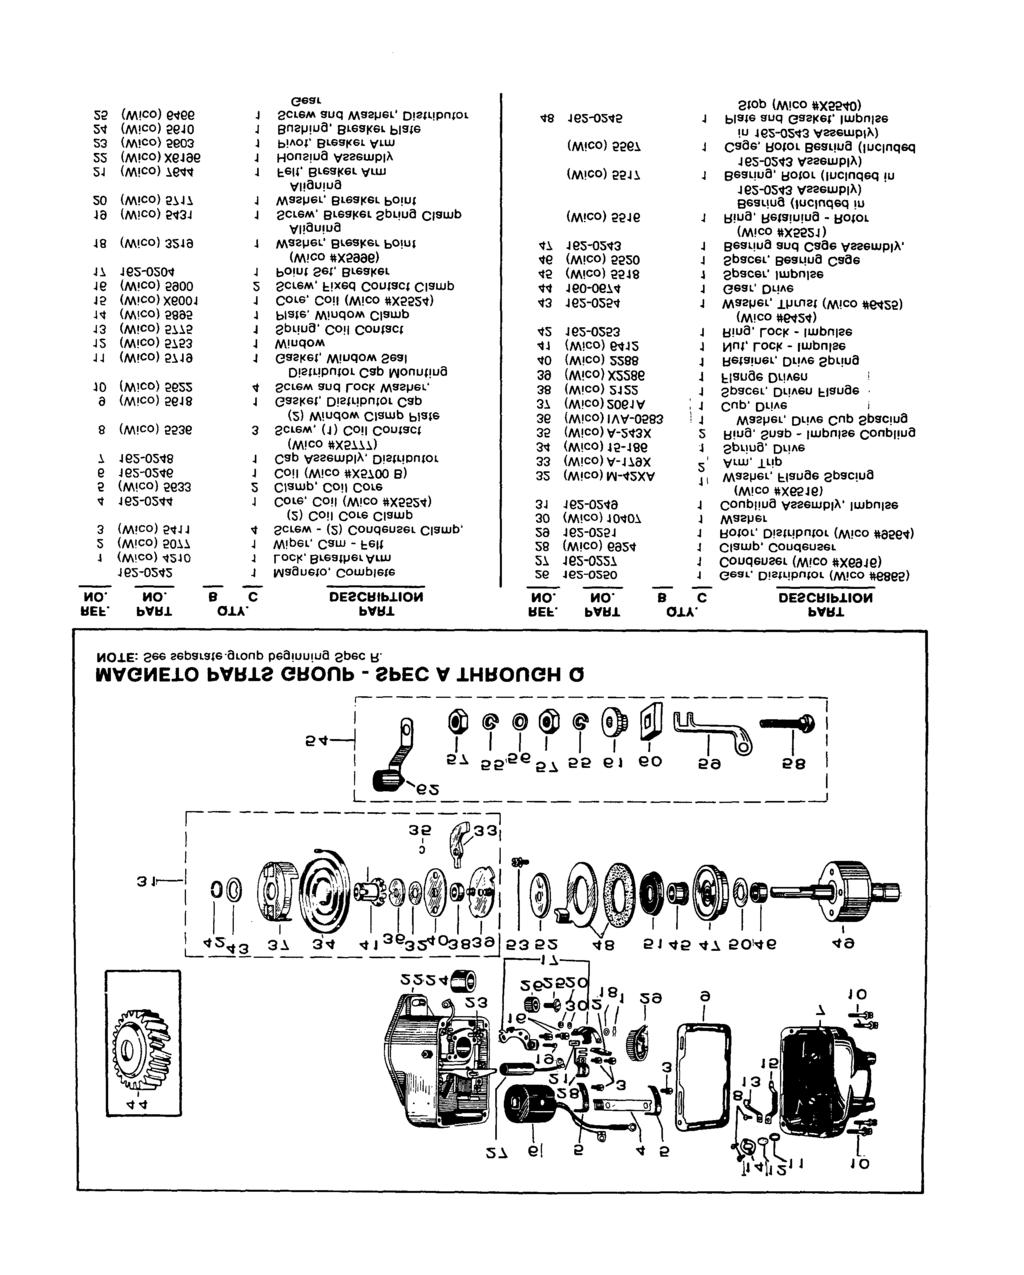 Parts Manual Mm Engine Jb Spec A T Jc V 9 74 Printed M Wico Magneto Wiring Schematic 7 3 L 35 33 5